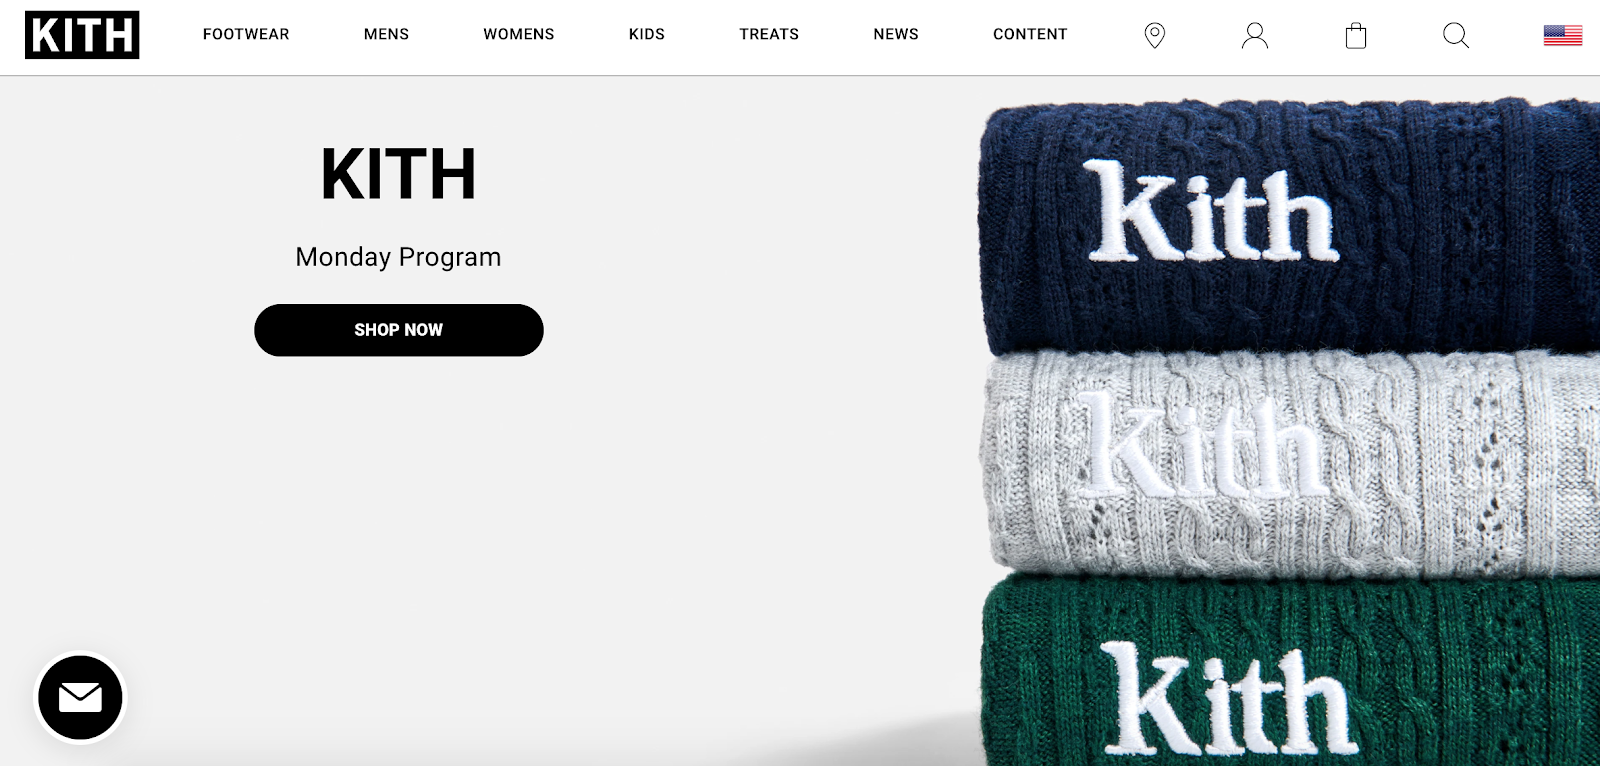 Kith homepage with stacked towels in the background